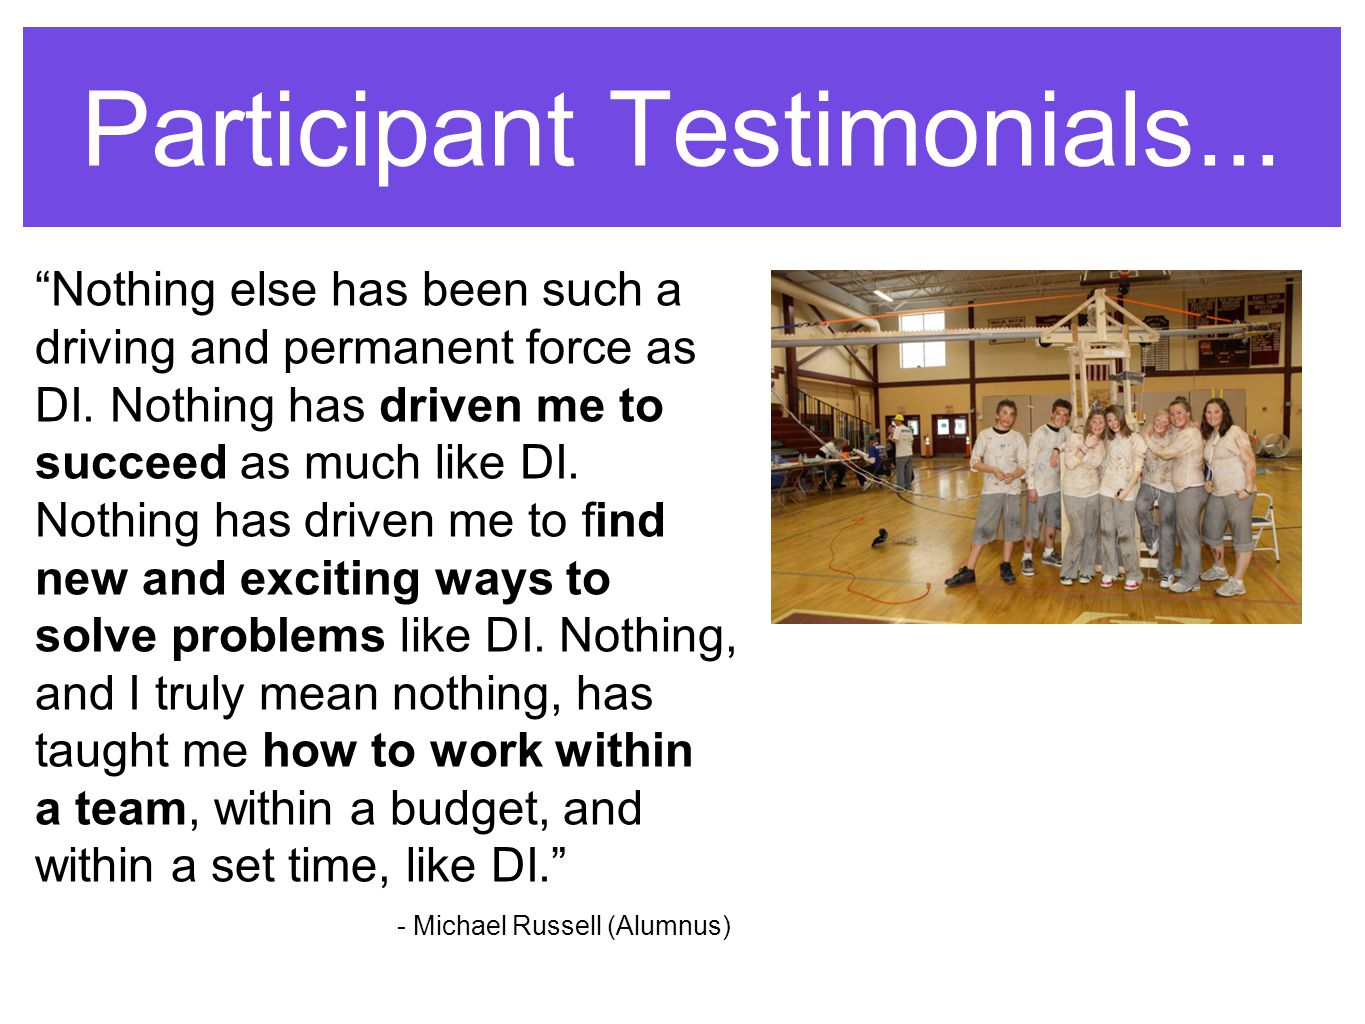 Participant Testimonials... Nothing else has been such a driving and permanent force as DI.